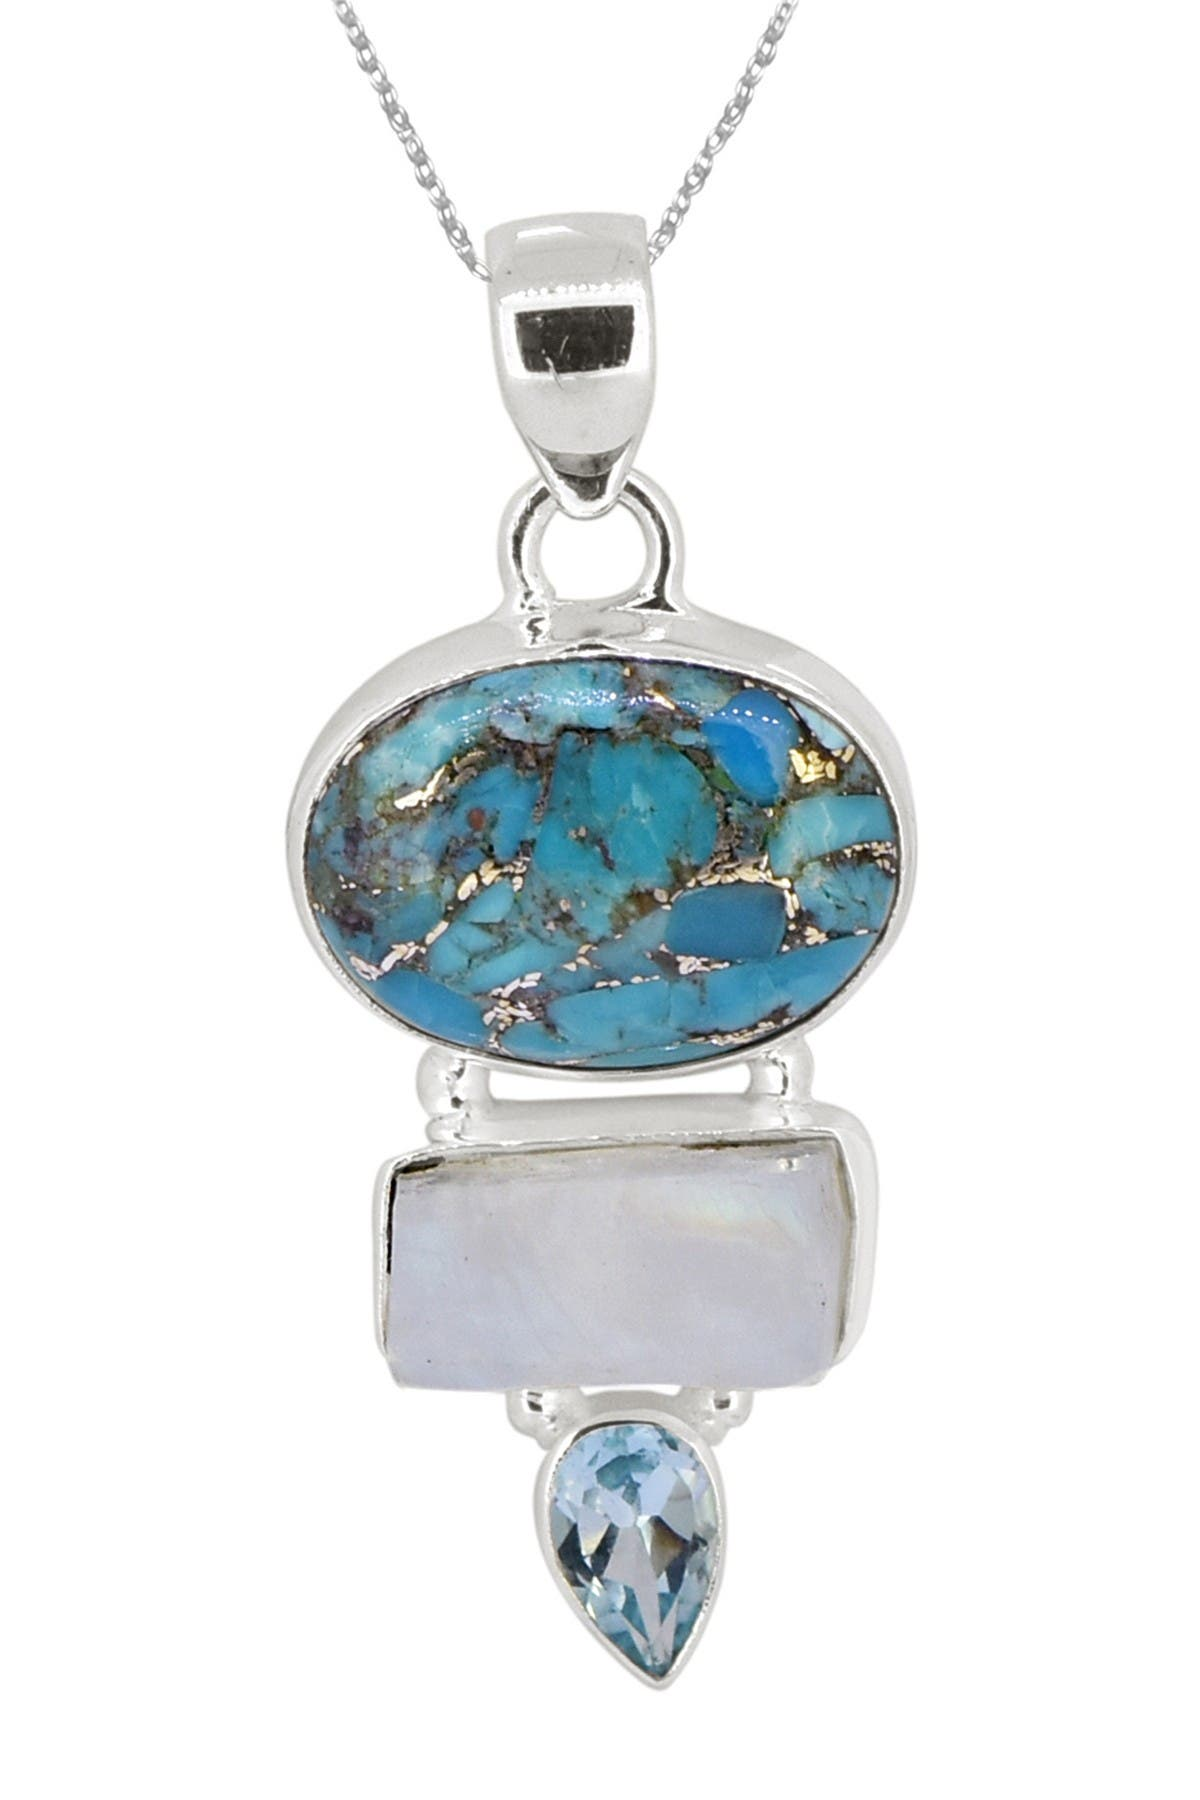 Details about  /100/% NATURAL 6X4MM SKY BLUE TOPAZ CROSS AAA++ GEM STERLING SILVER 925 PENDANT